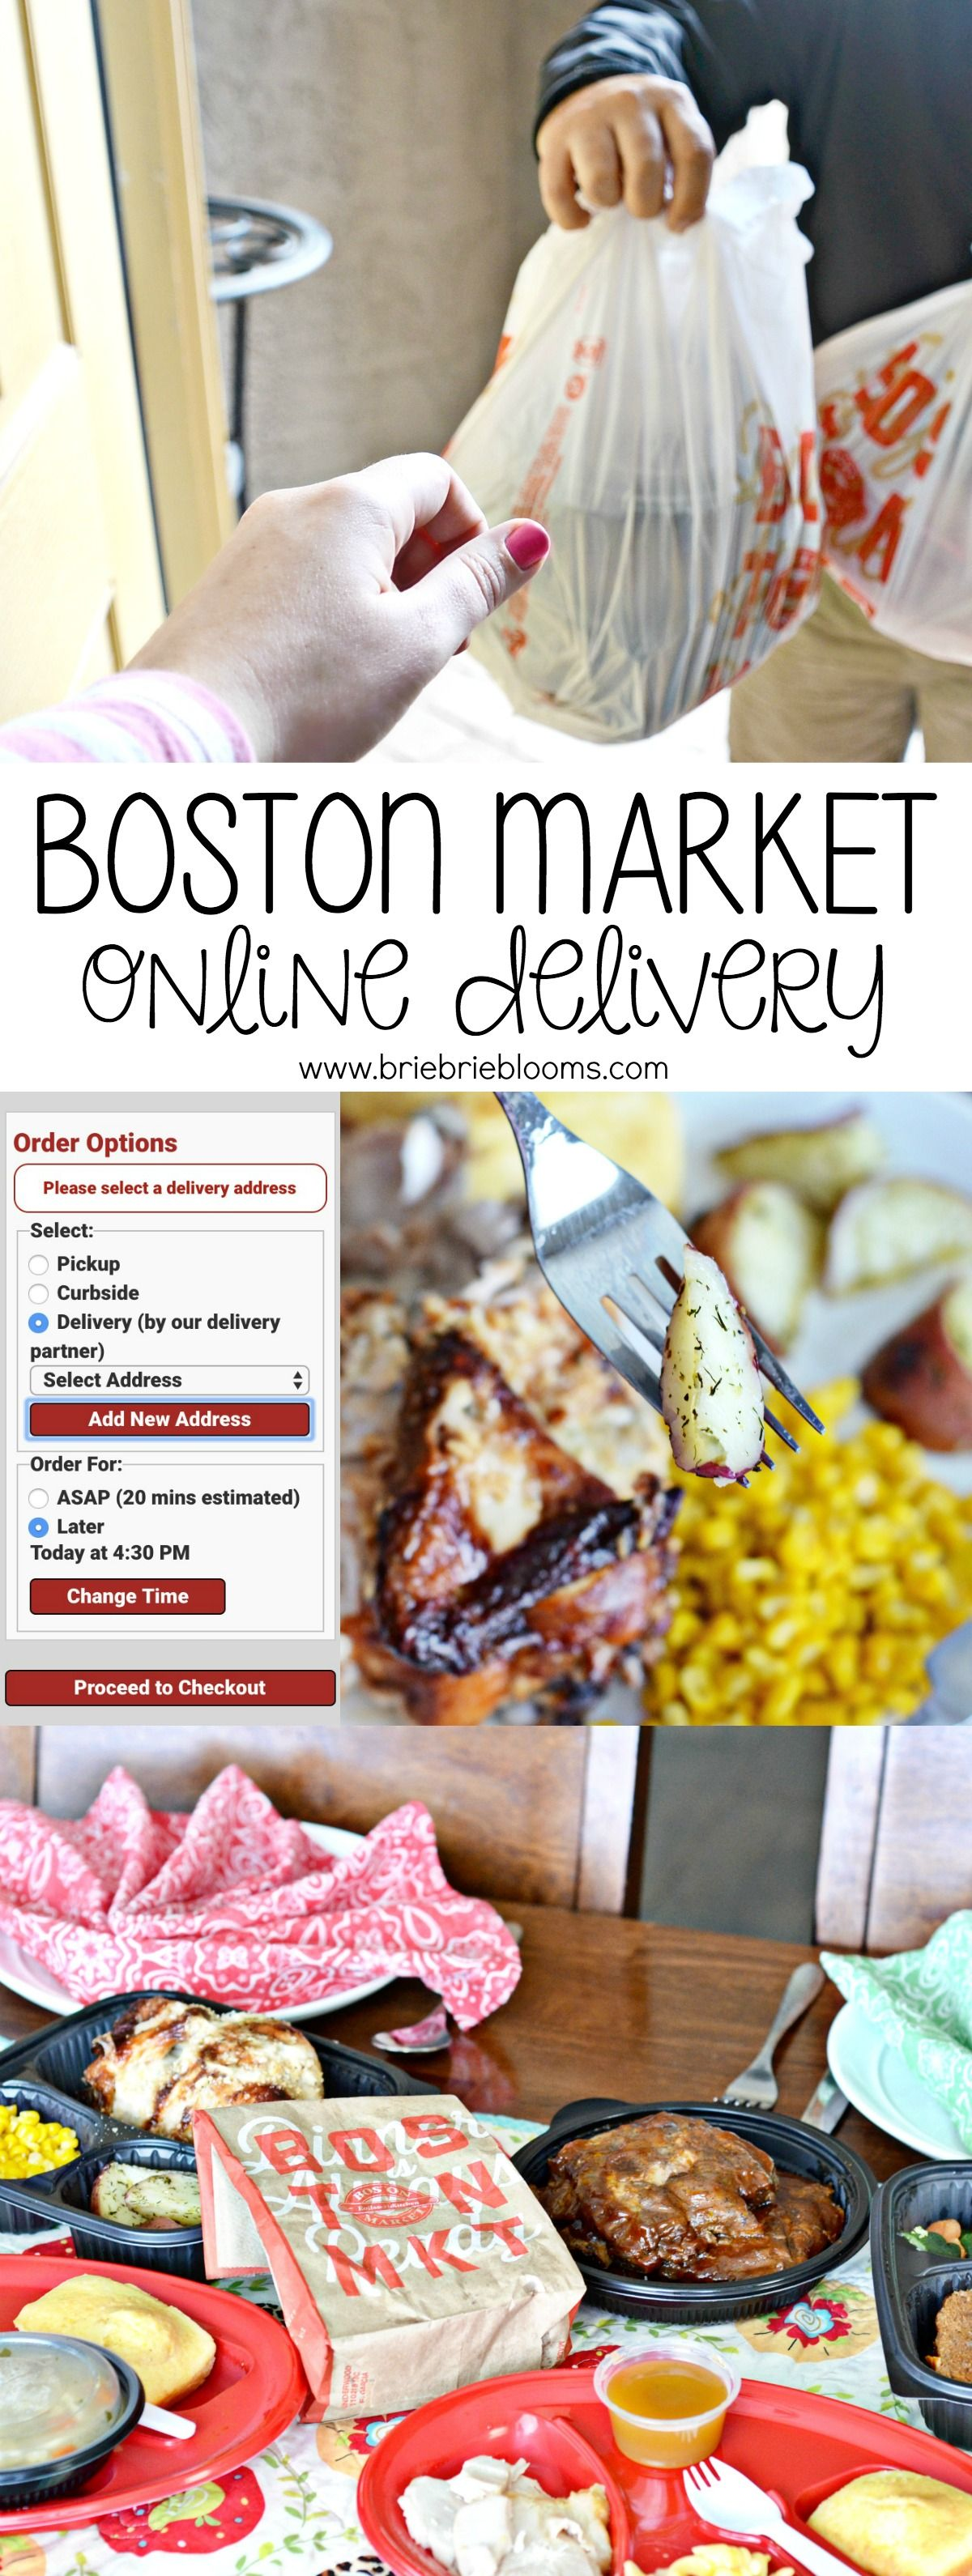 Boston Market Online Delivery (With images) Kids meal